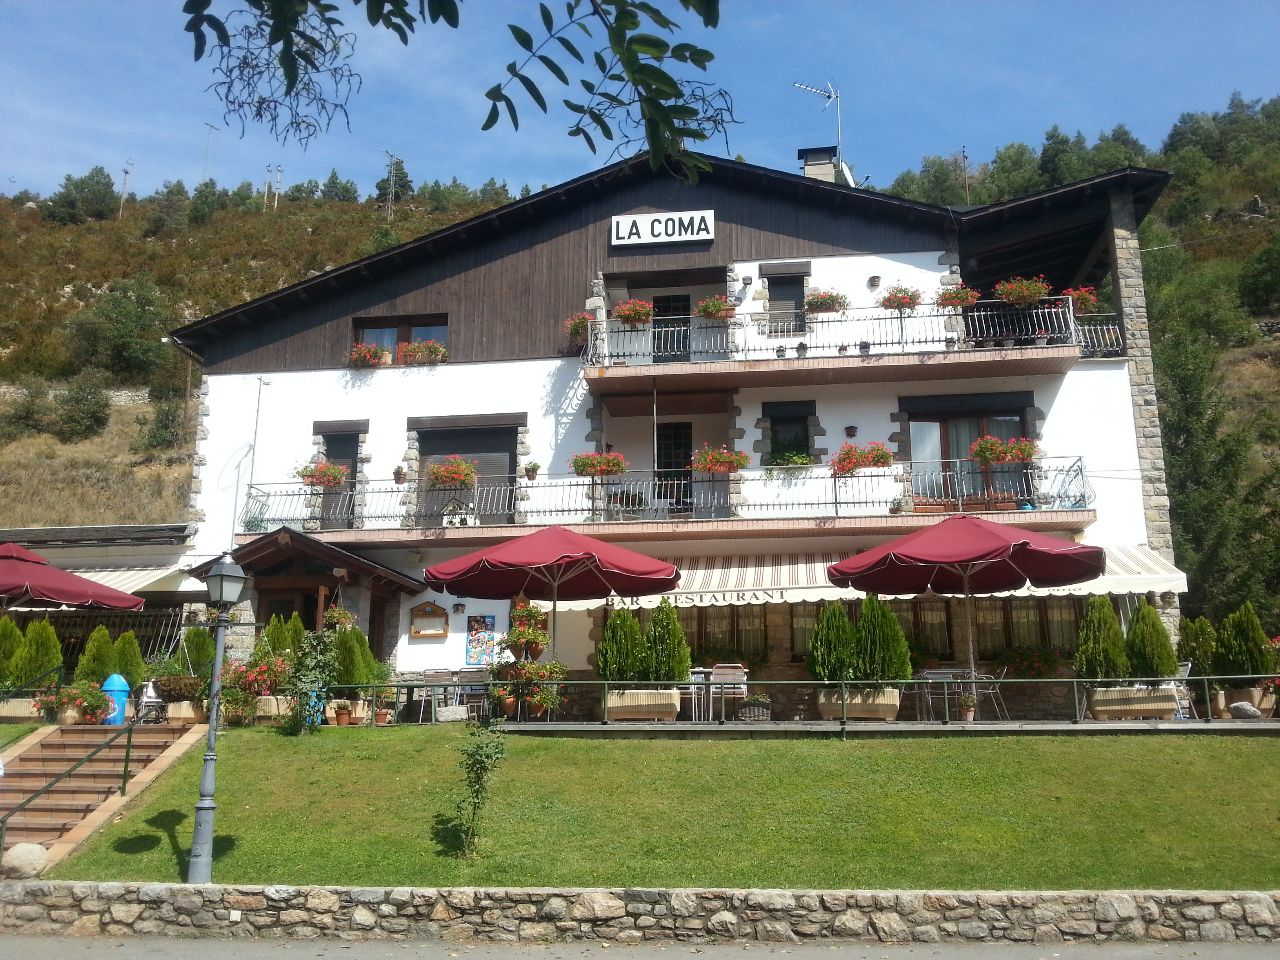 Stau on the road again auto travel blog - Restaurant la comma ...